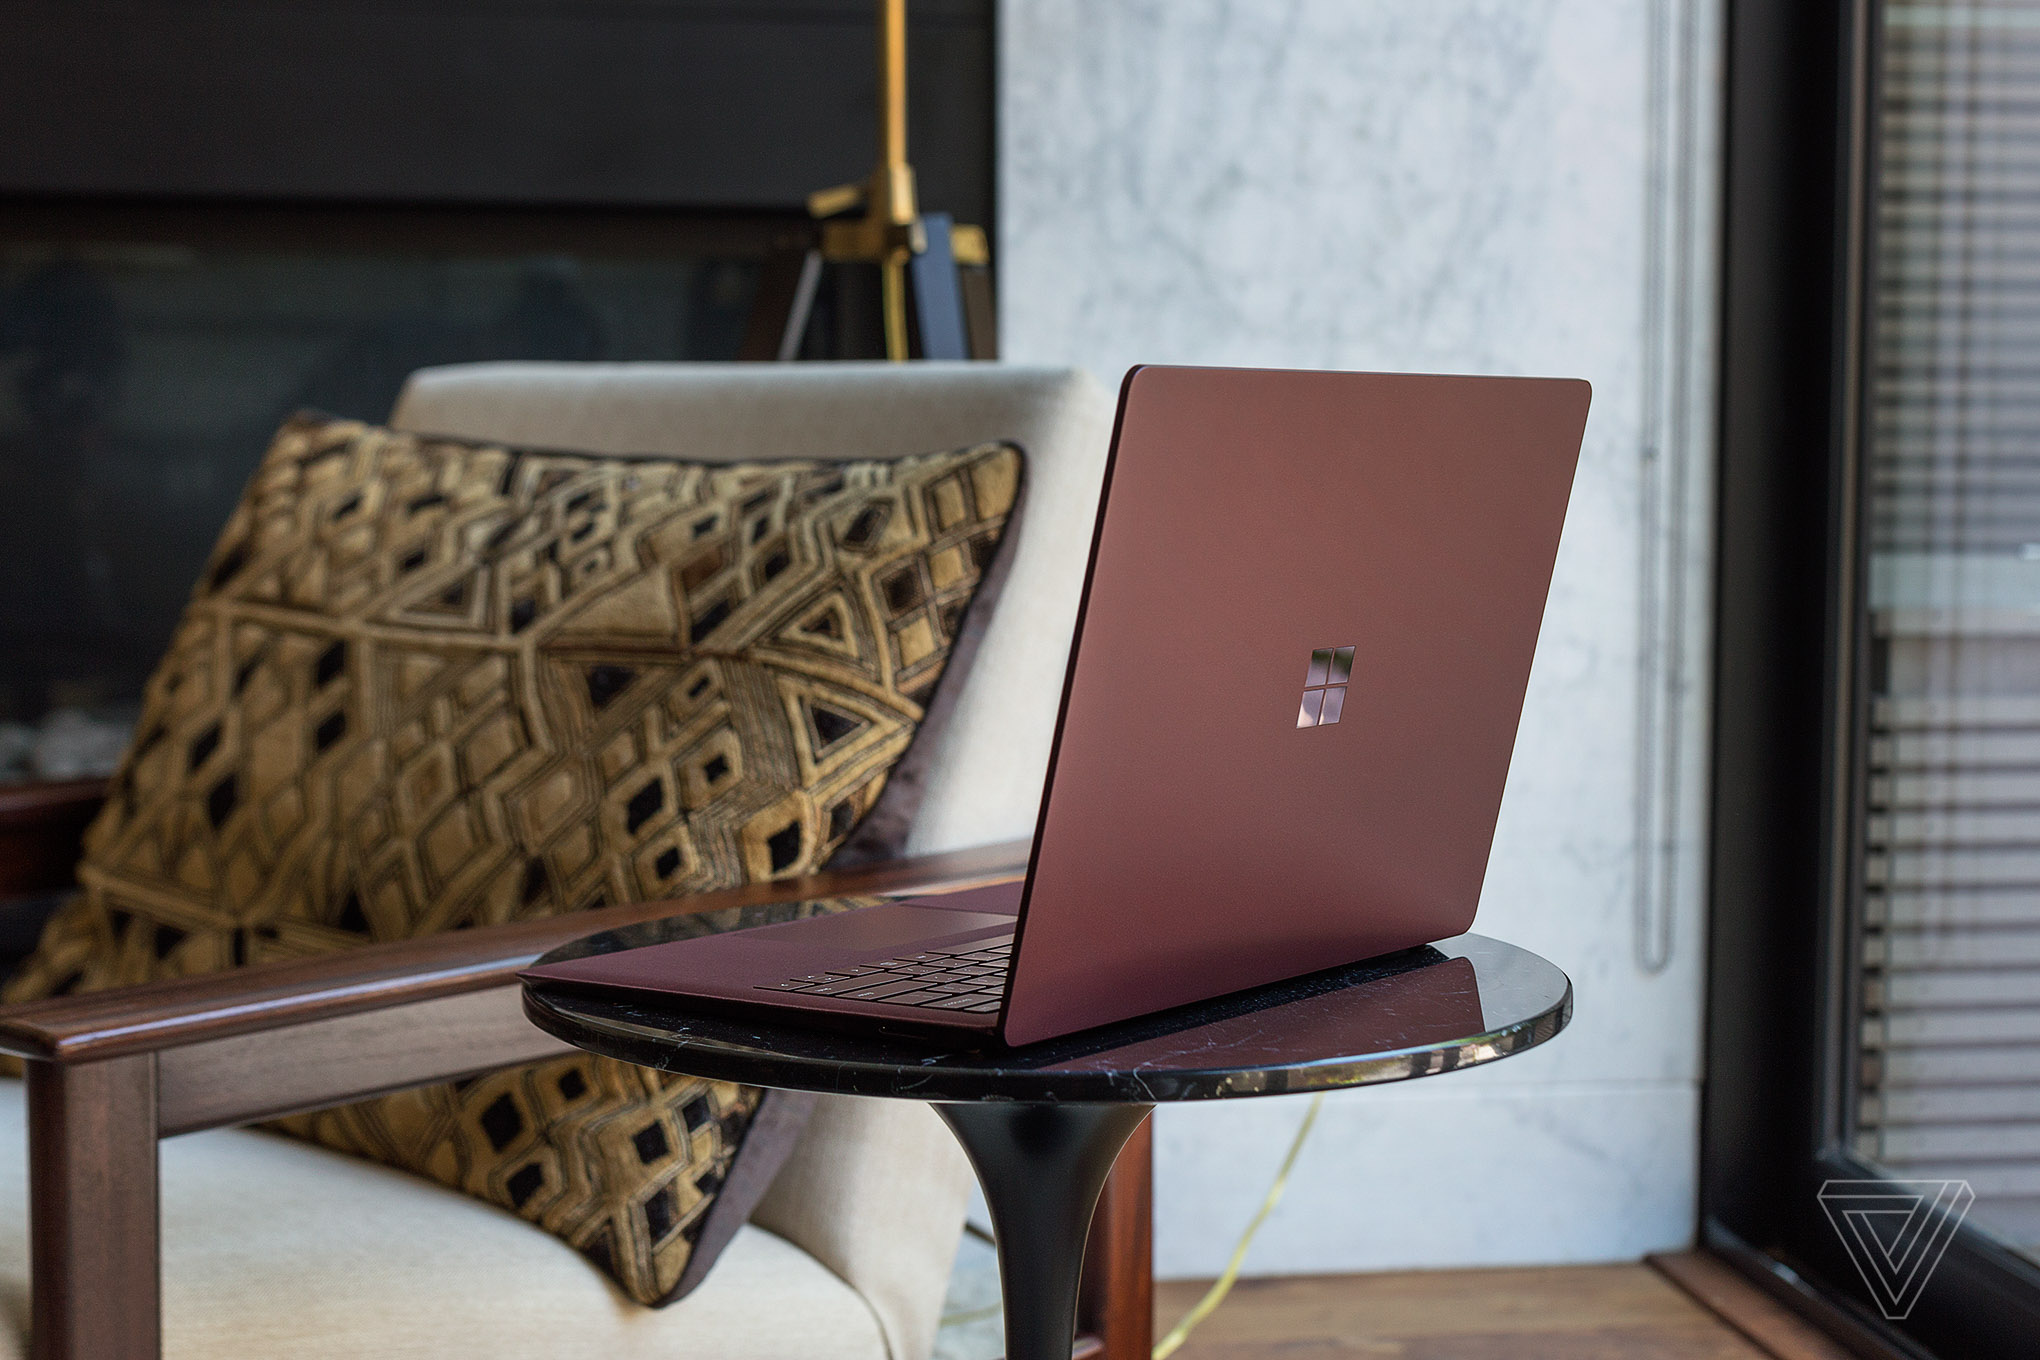 The Surface Laptop Totally Lives Up To Expectations